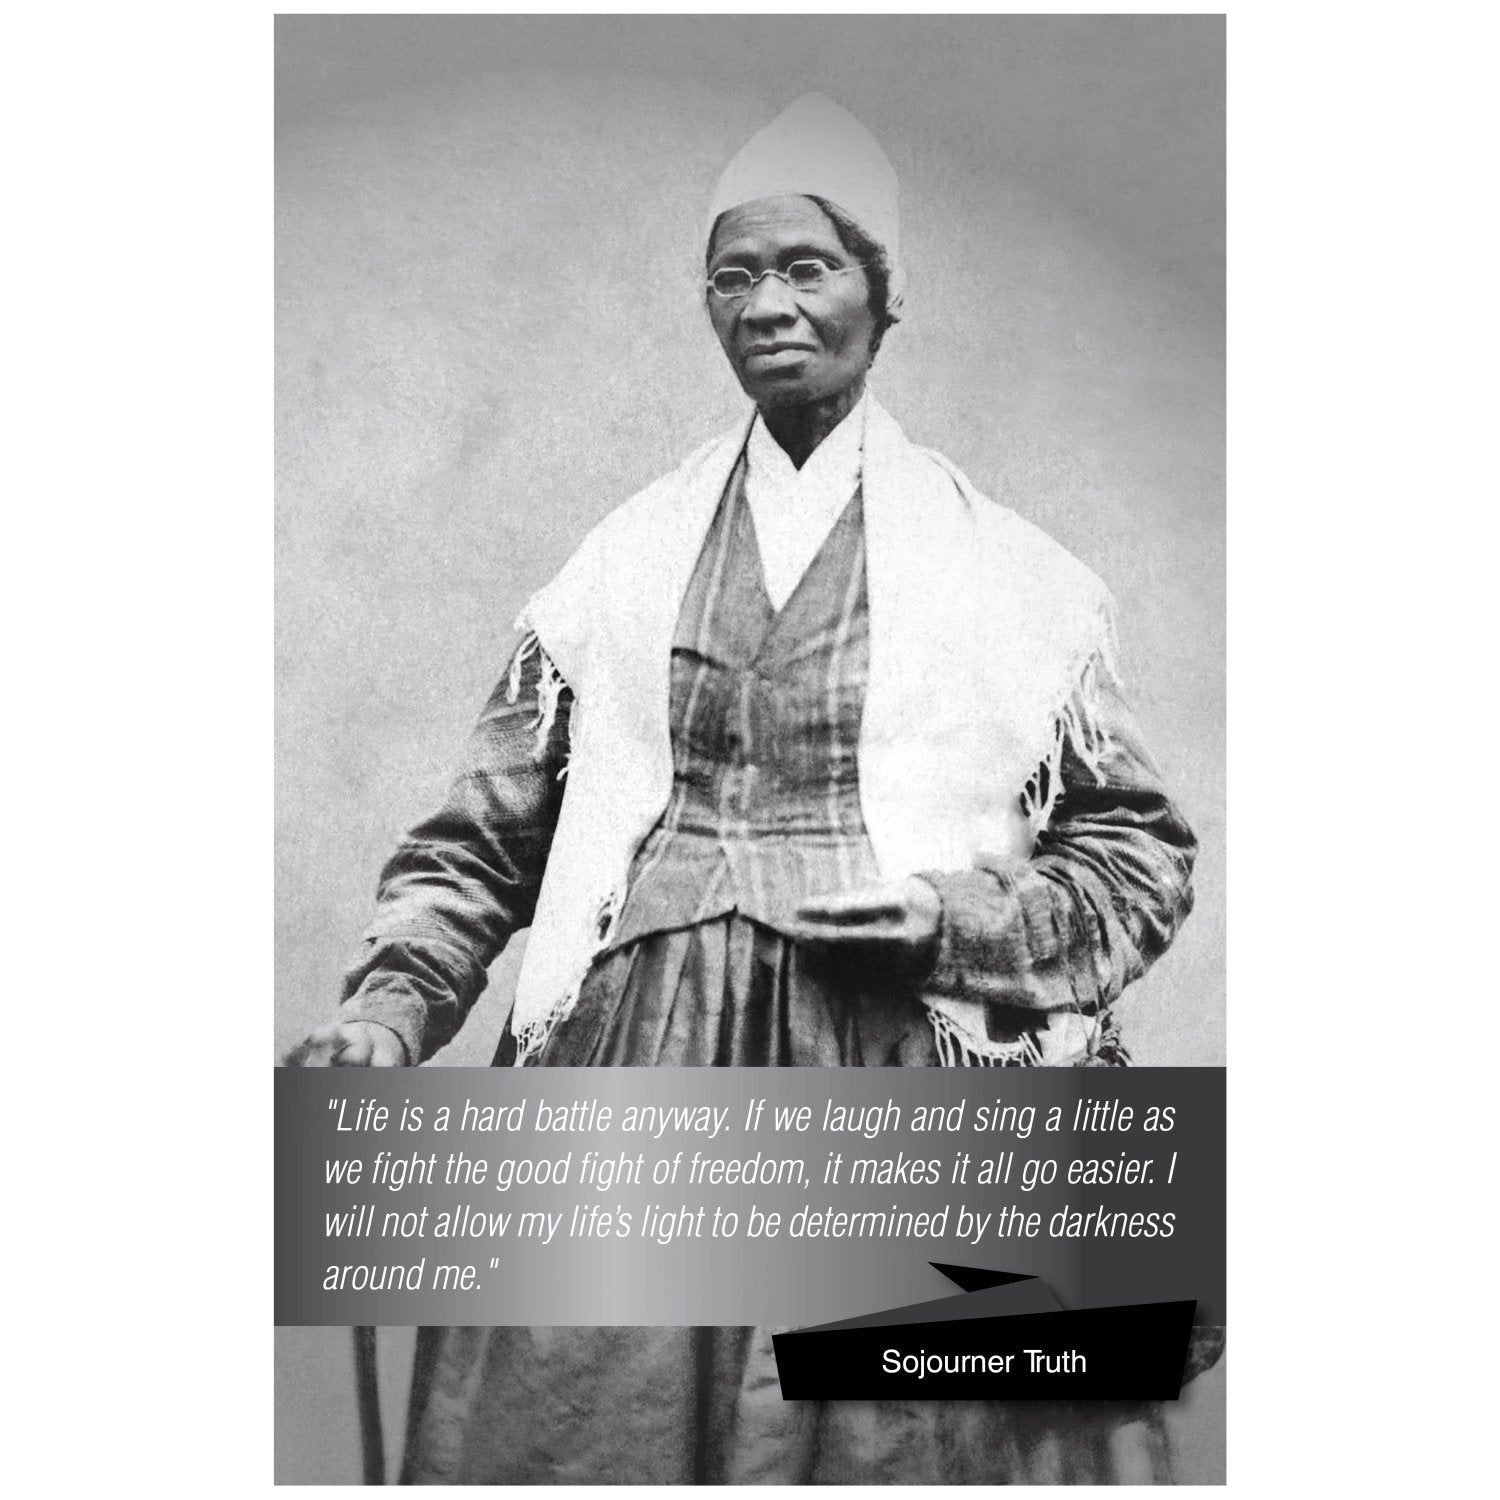 Sojourner Truth Poster by Sankofa Designs